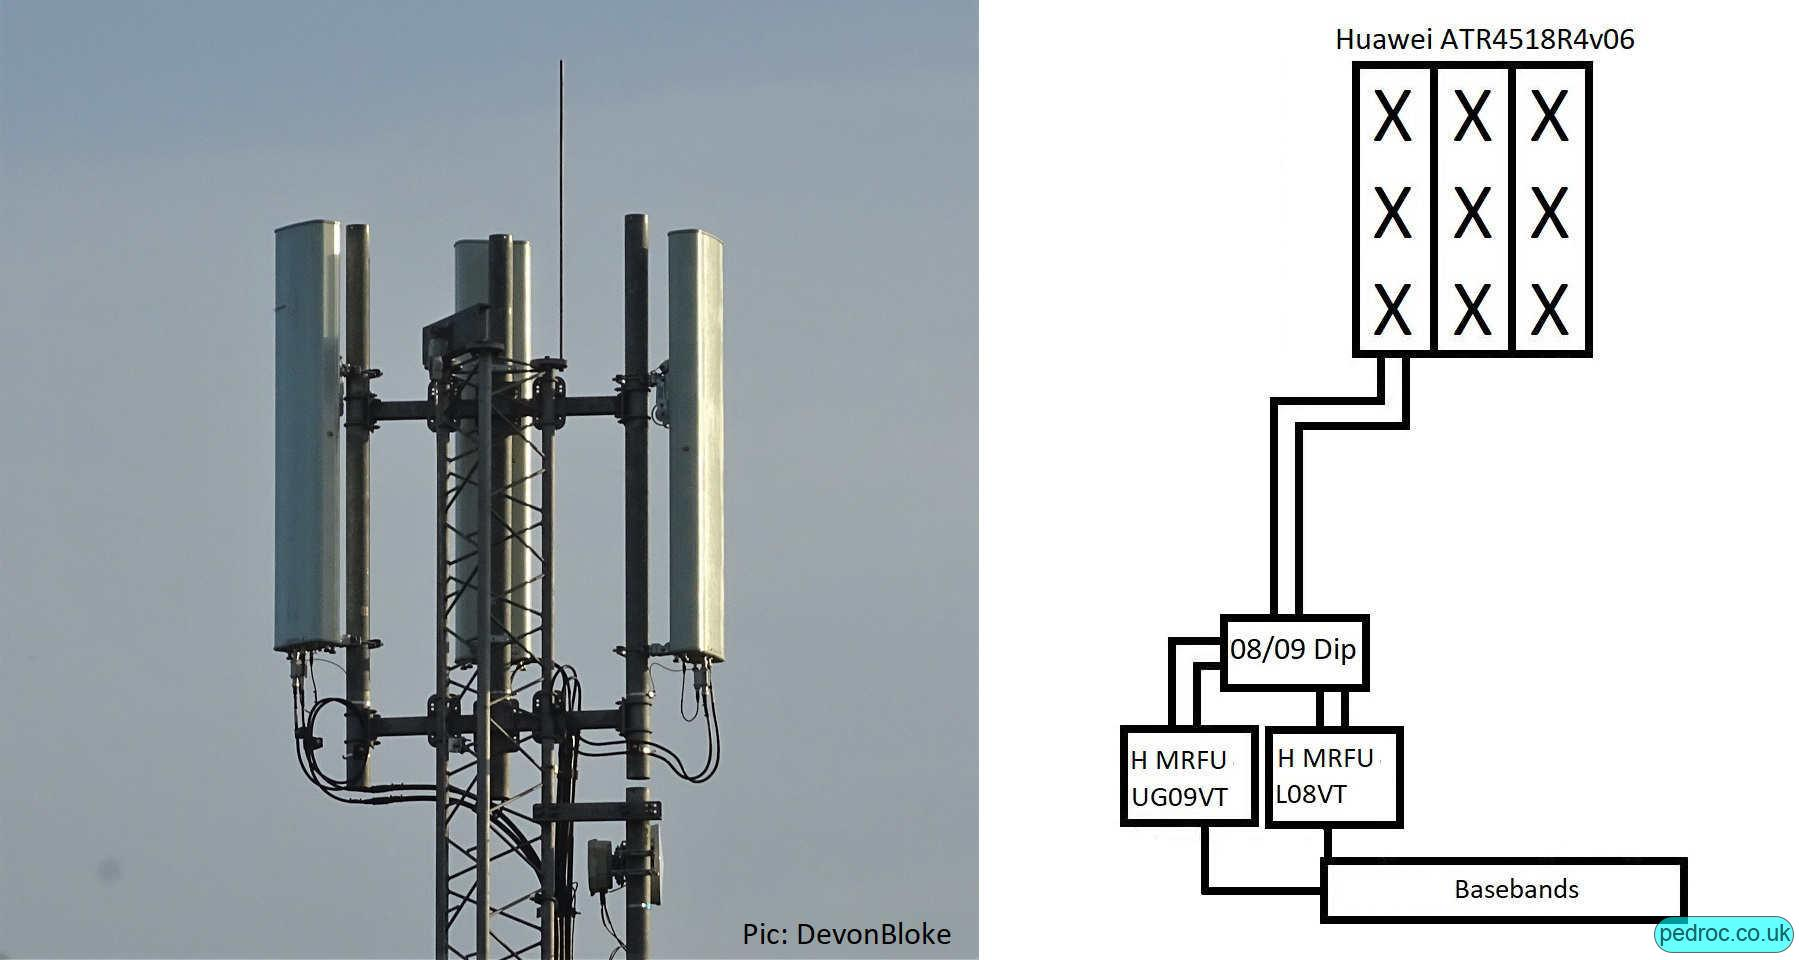 Vodafone Huawei low band site with Huawei ATR4518R4v06 antennas.